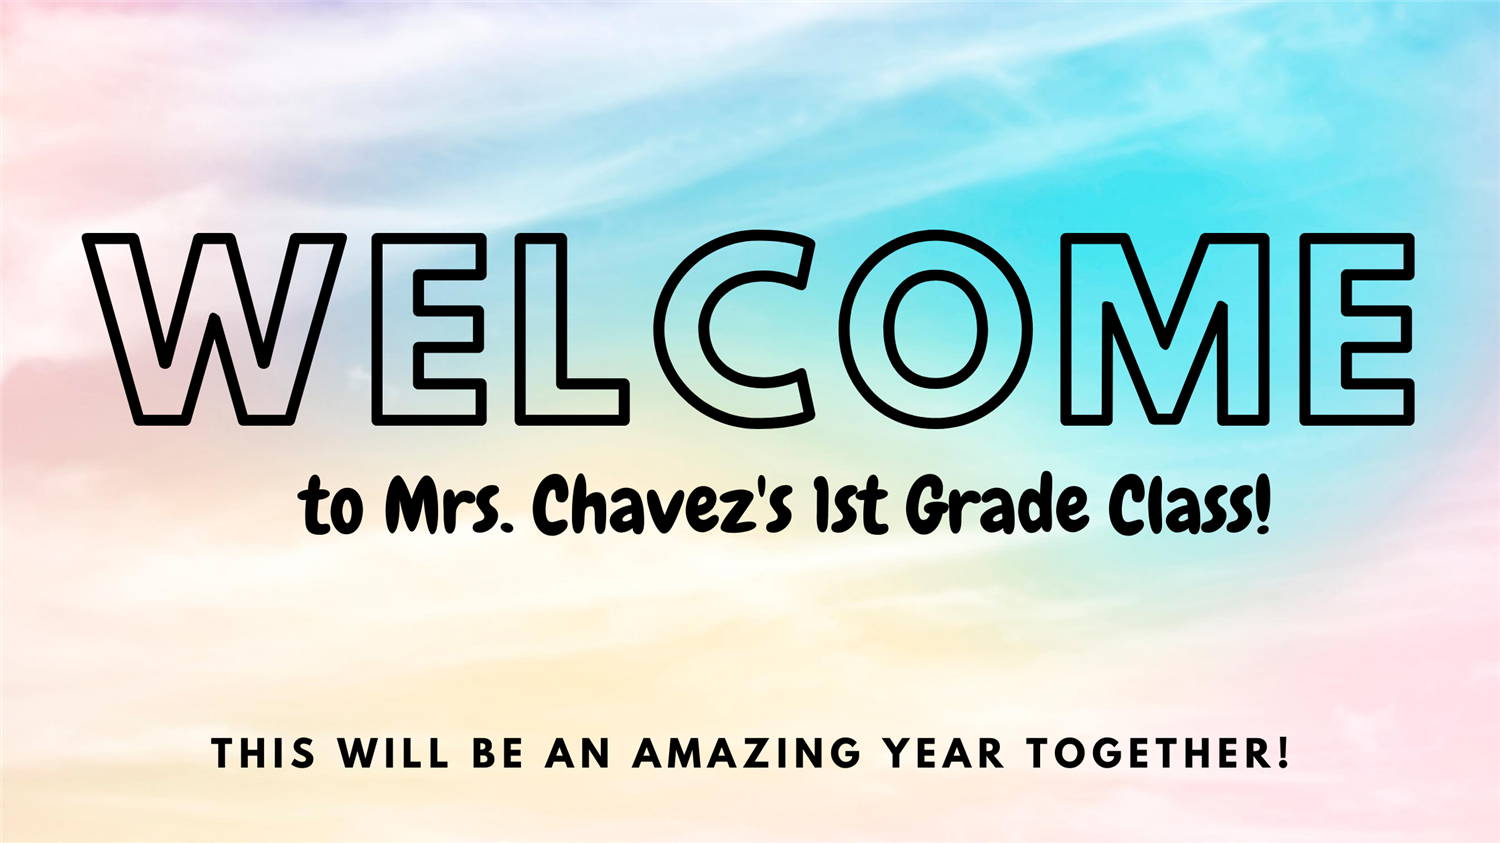 Welcome to Mrs. Chavez's First Grade Class!